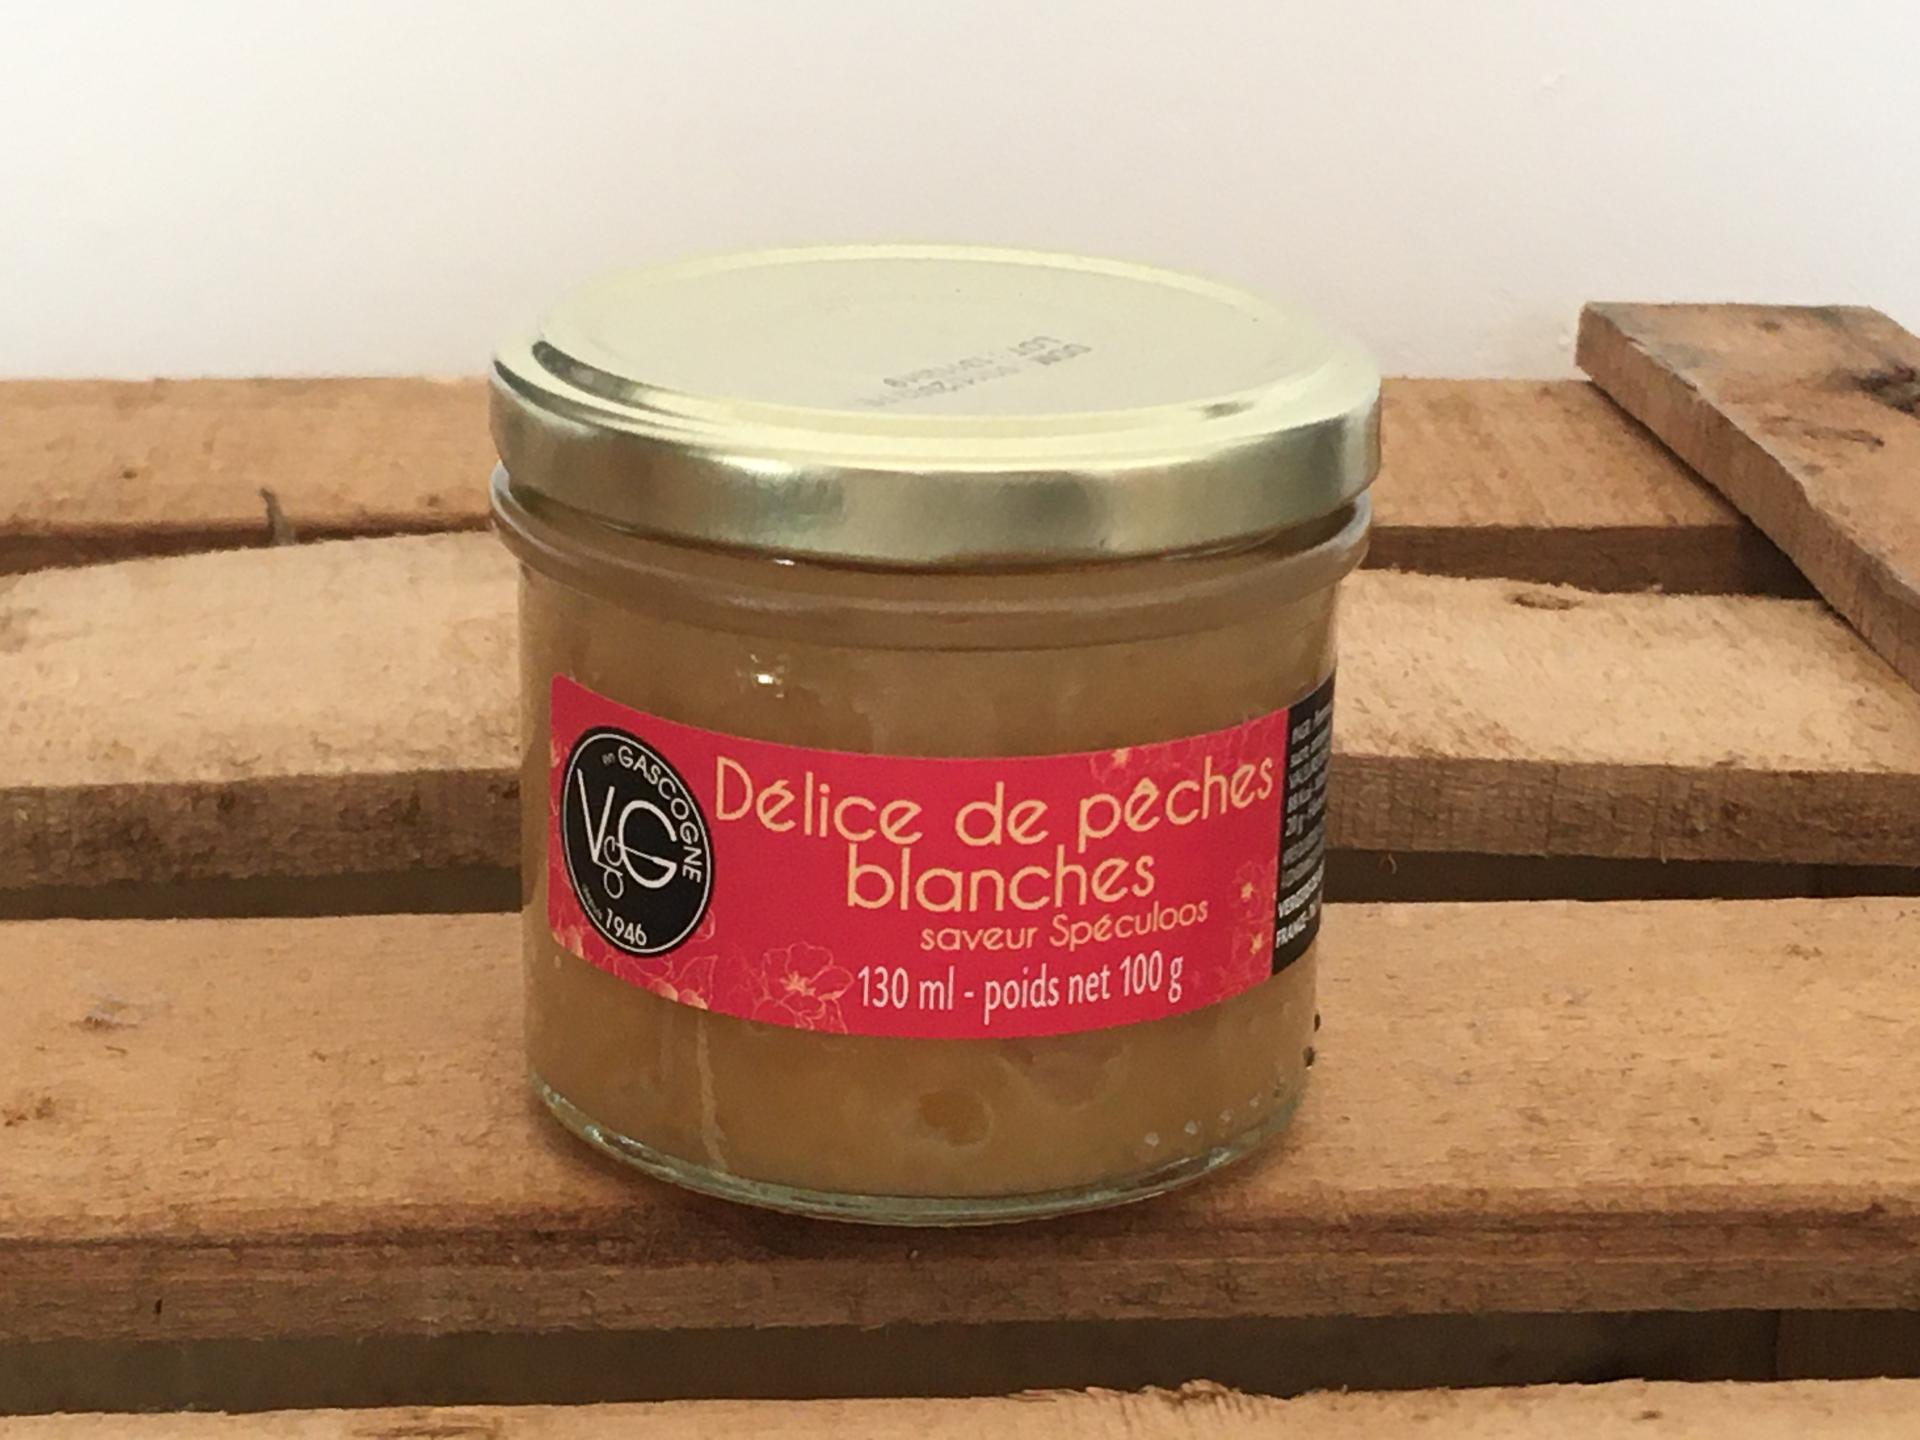 Delice de peches blanches speculoos 100g bocal